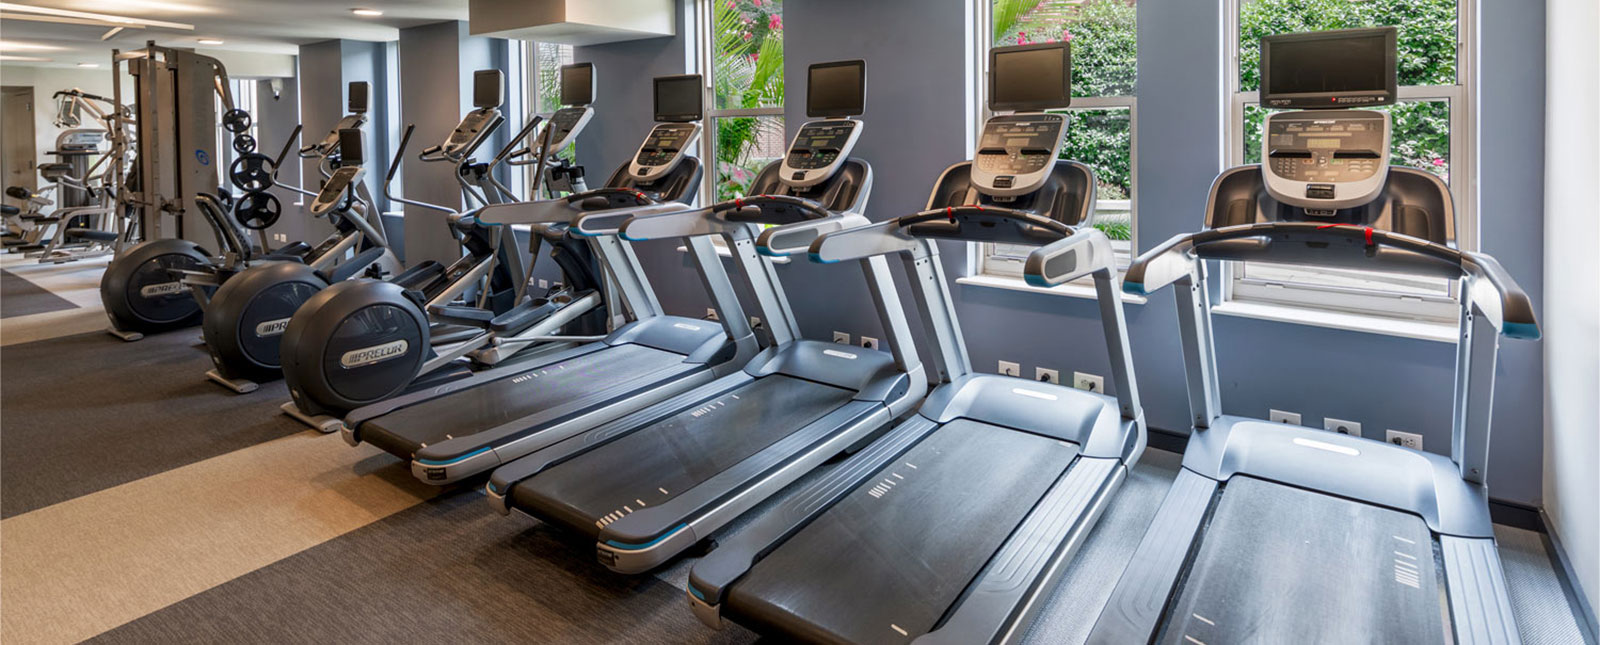 Gym at Spinnaker Bay Serviced Apartments